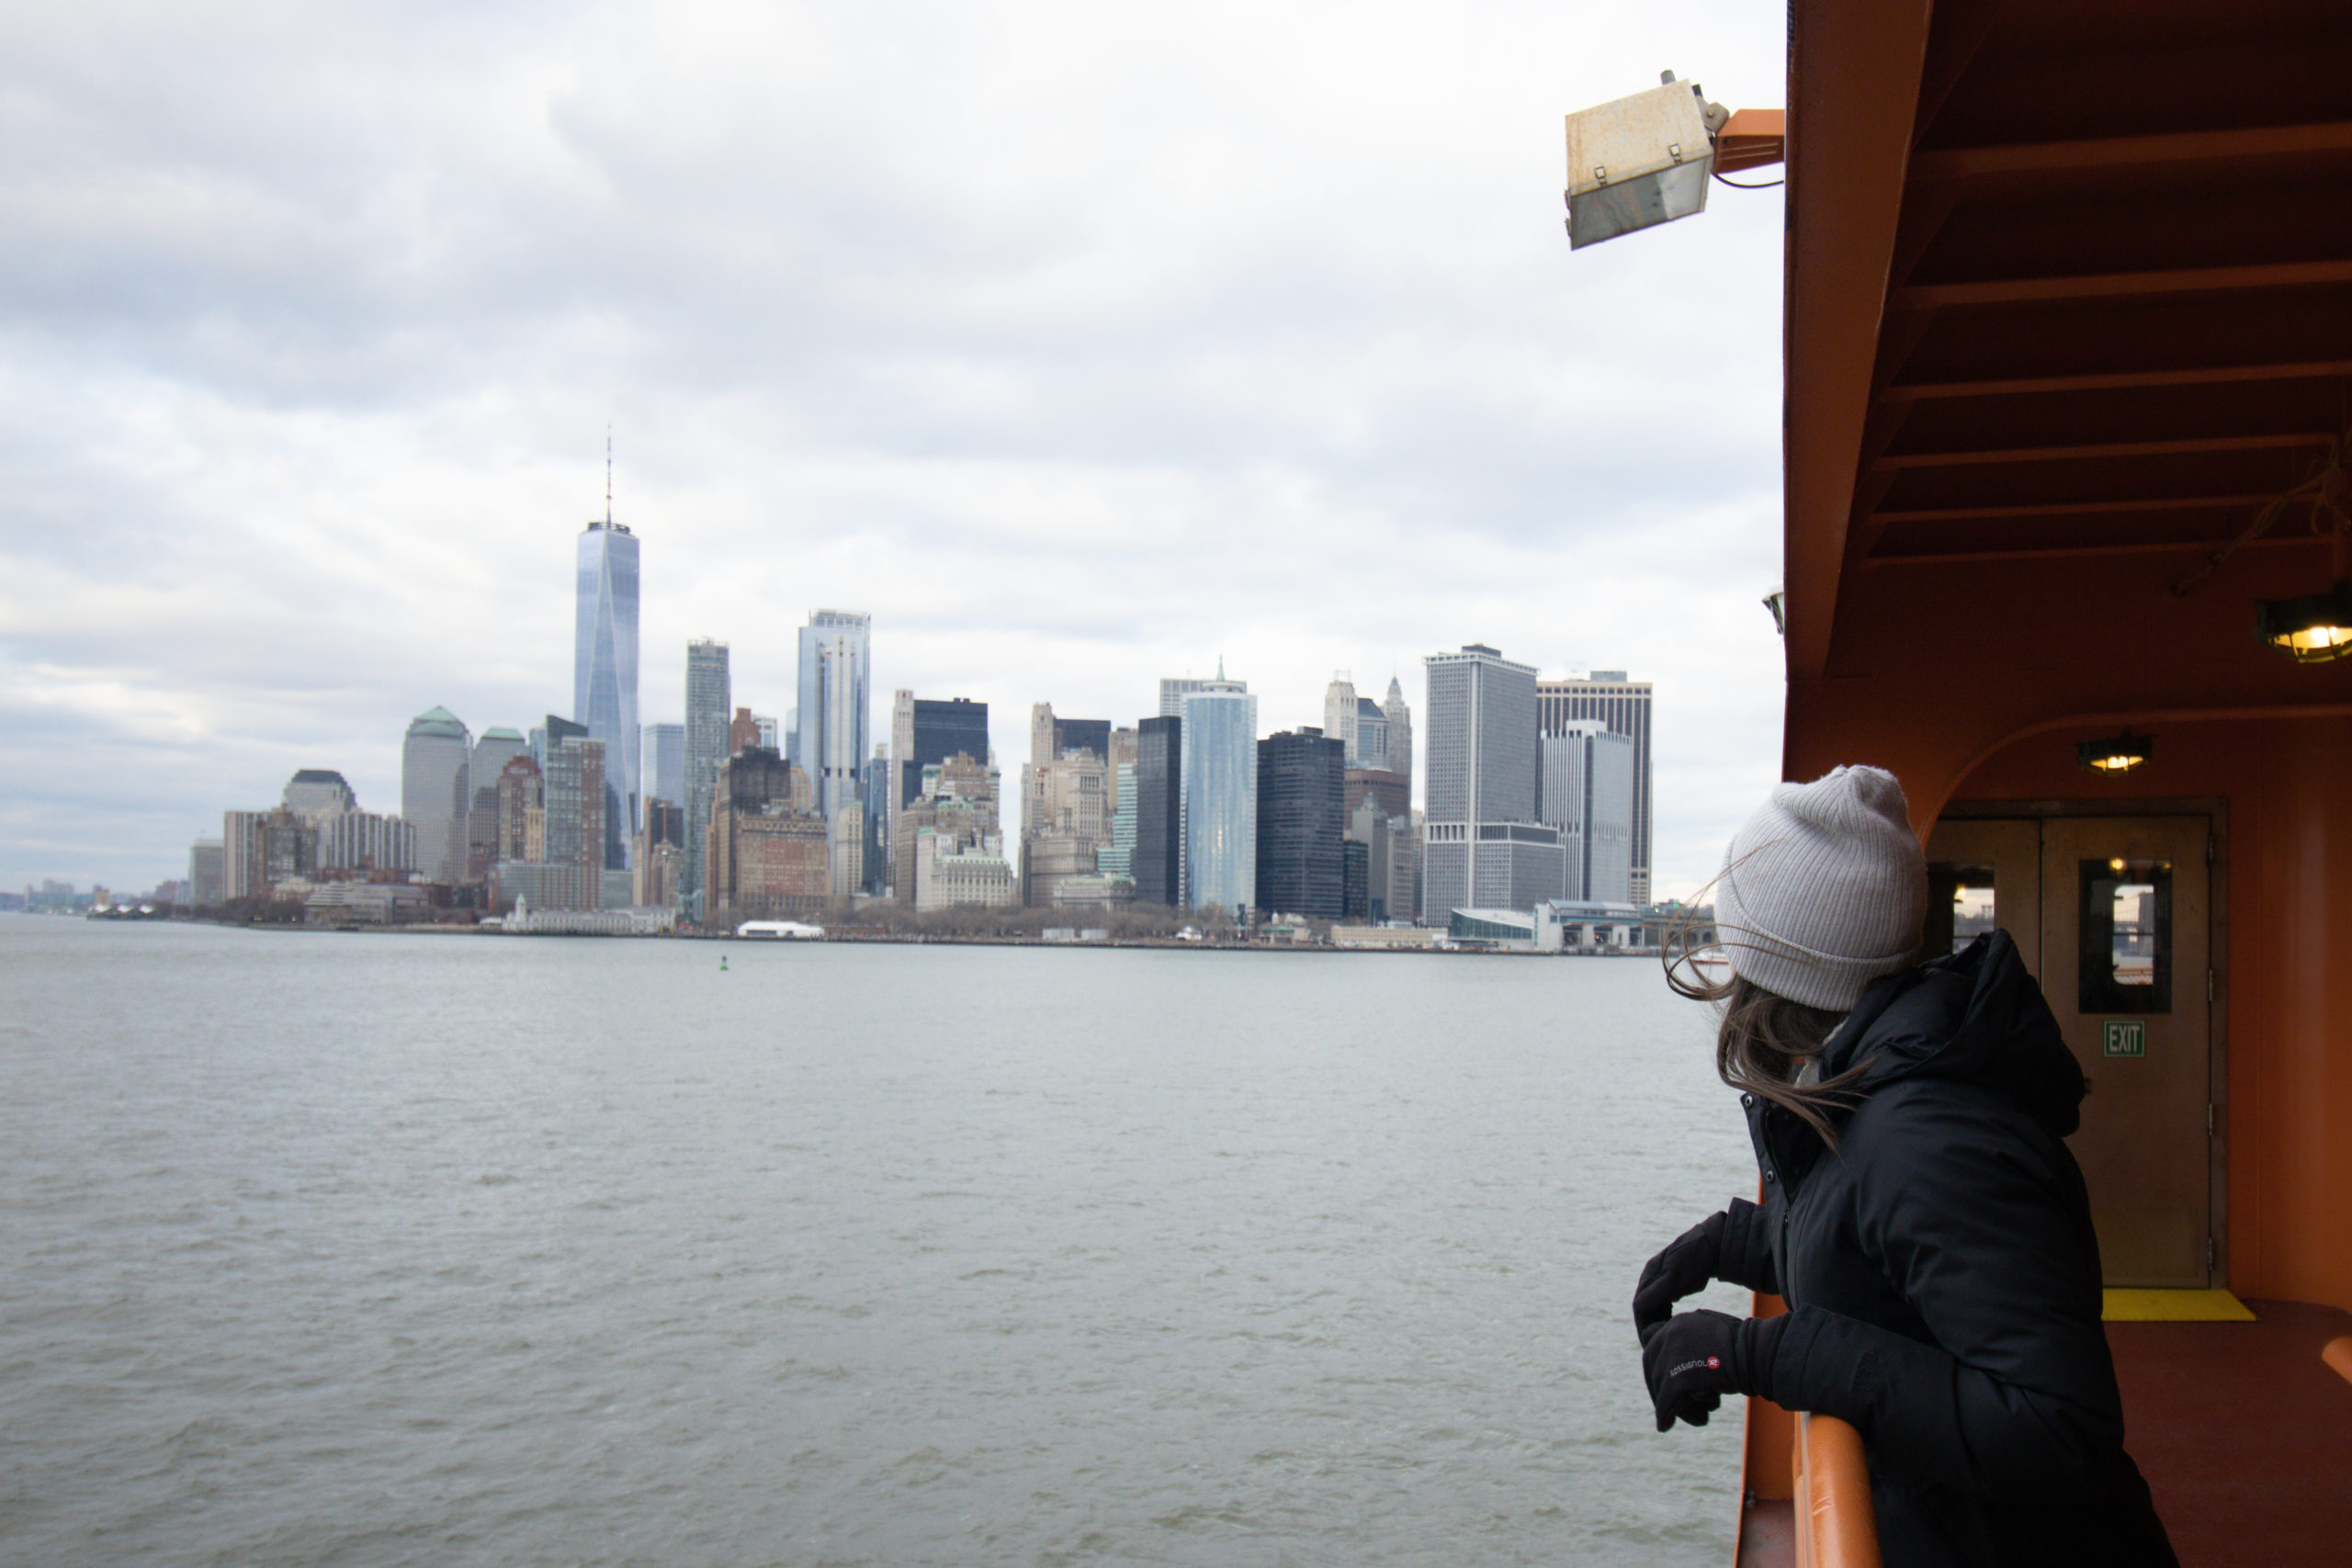 A woman standing on the Staten Island Ferry with the Manhattan skyline view in the background.